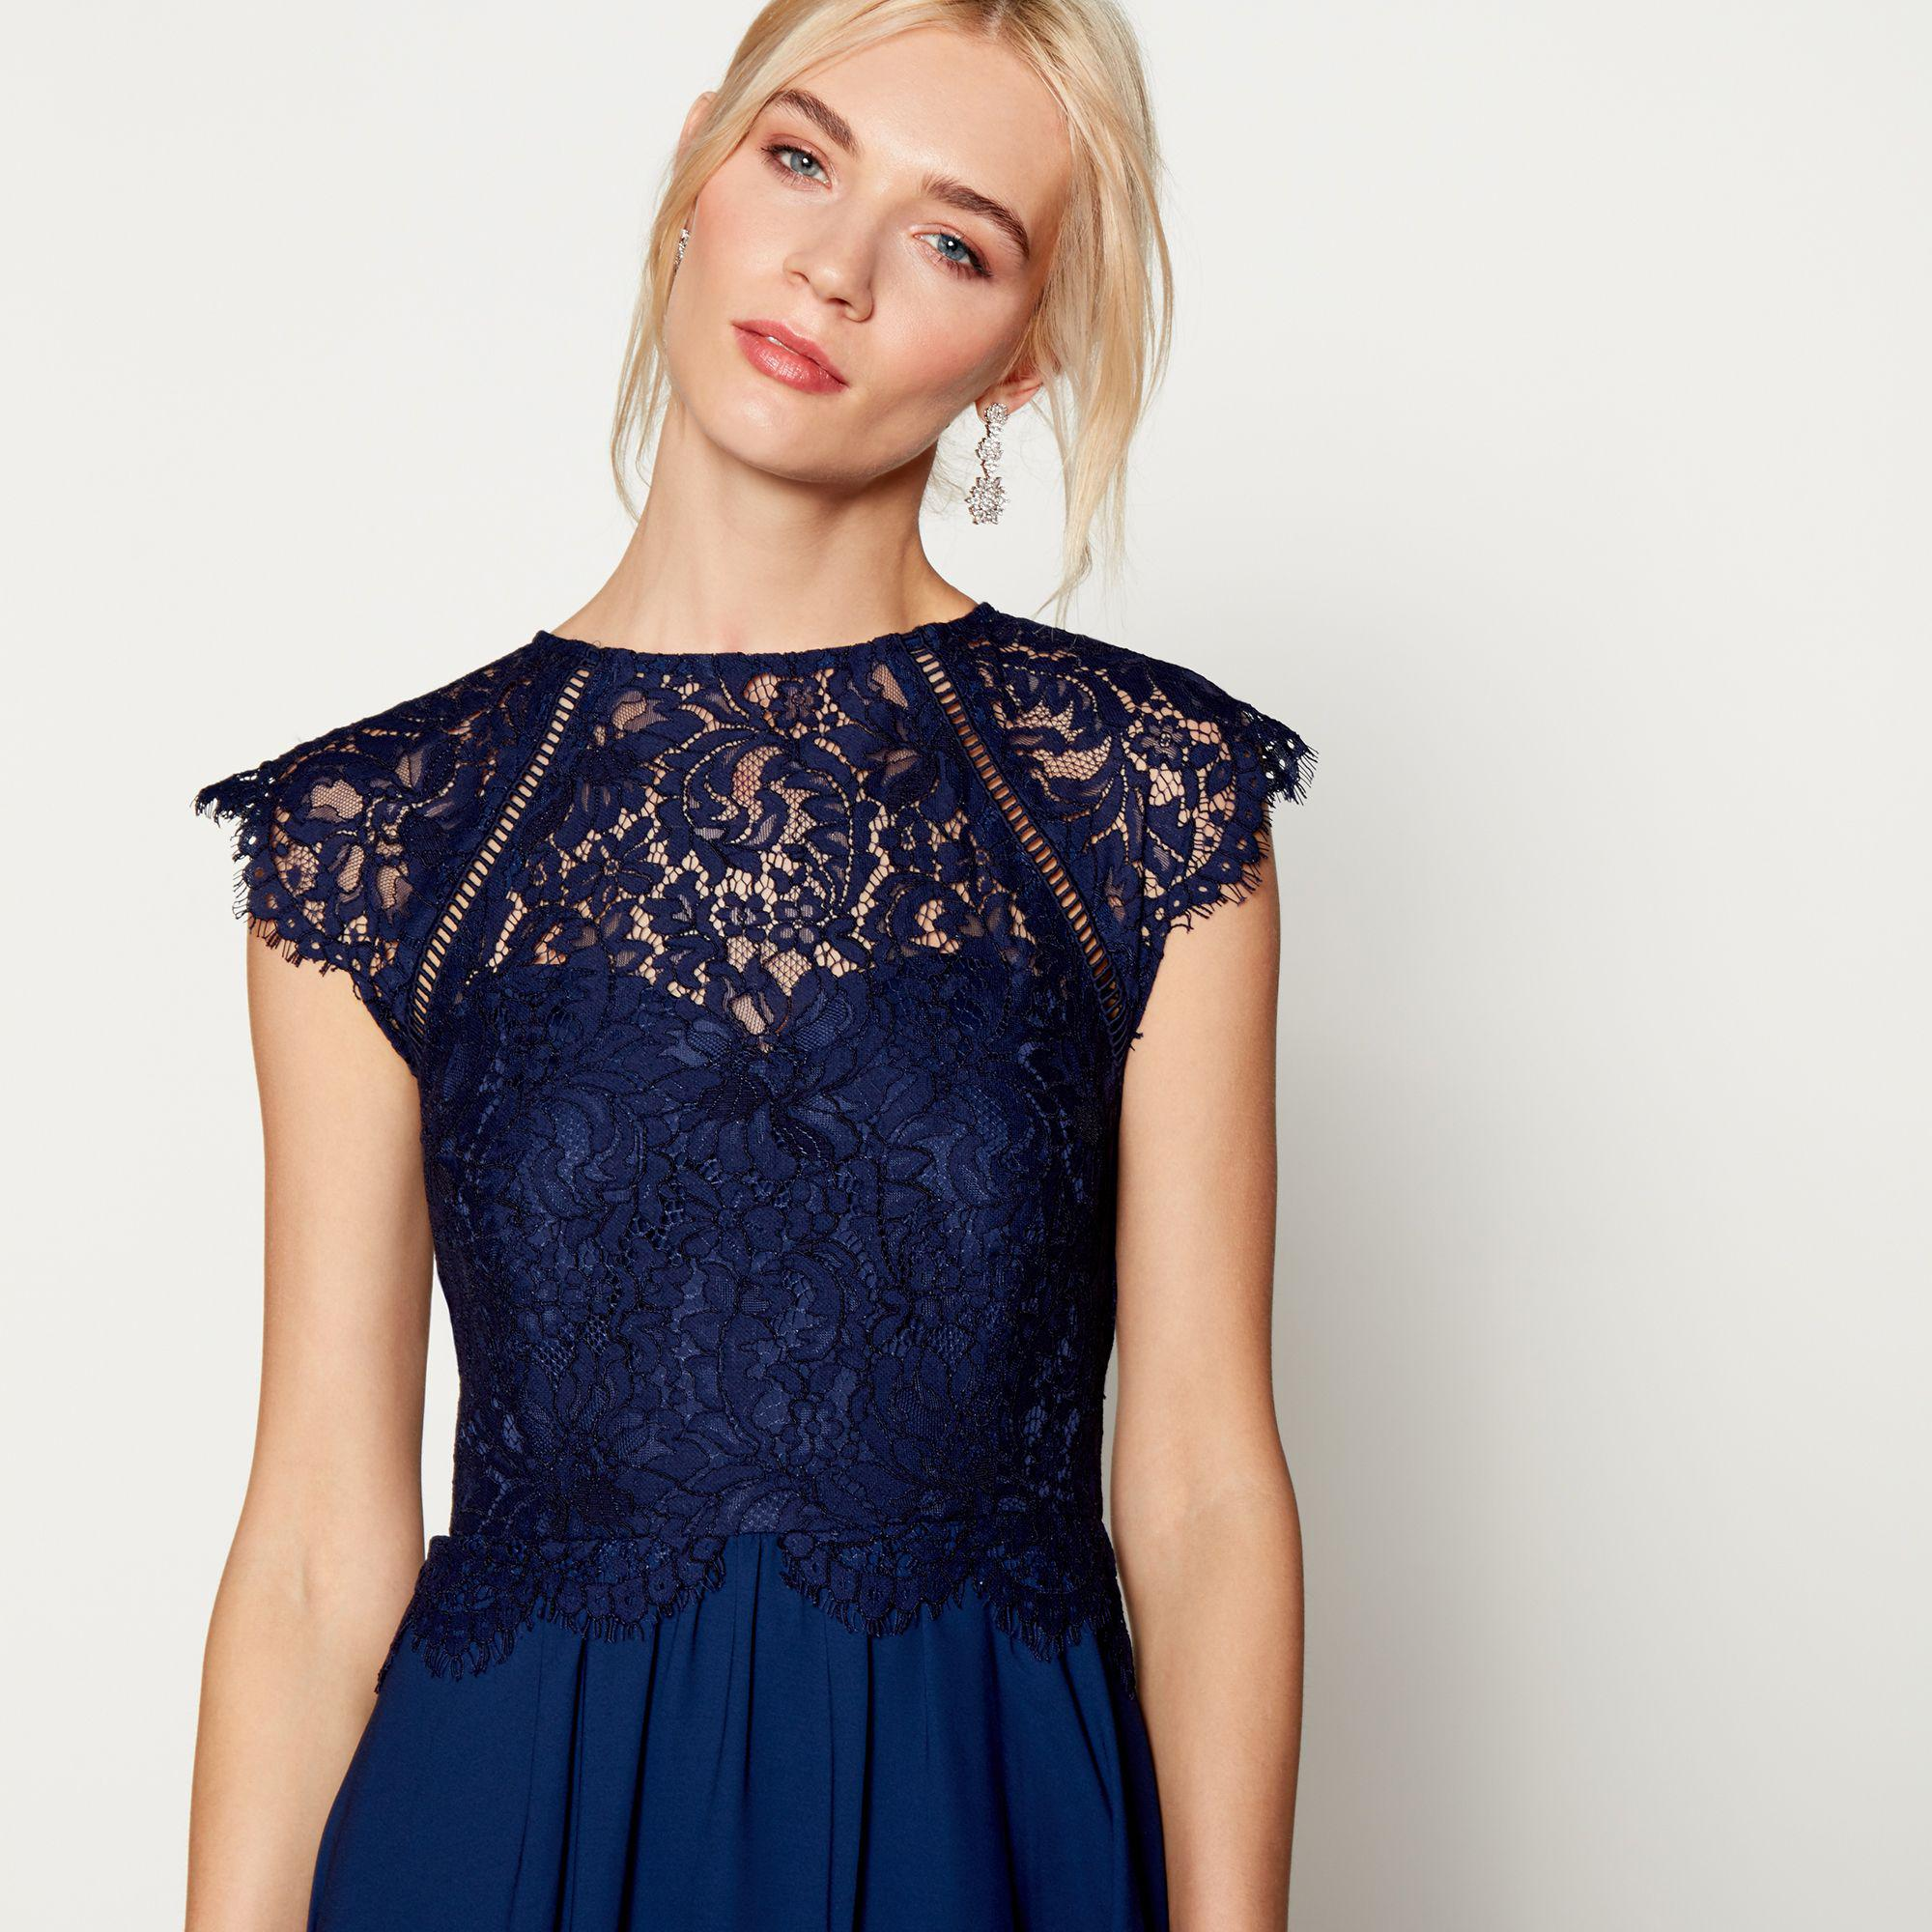 af723044d807 Début Navy Chiffon Lace 'olivia' High Neck Midi Bridesmaid Dress in ...